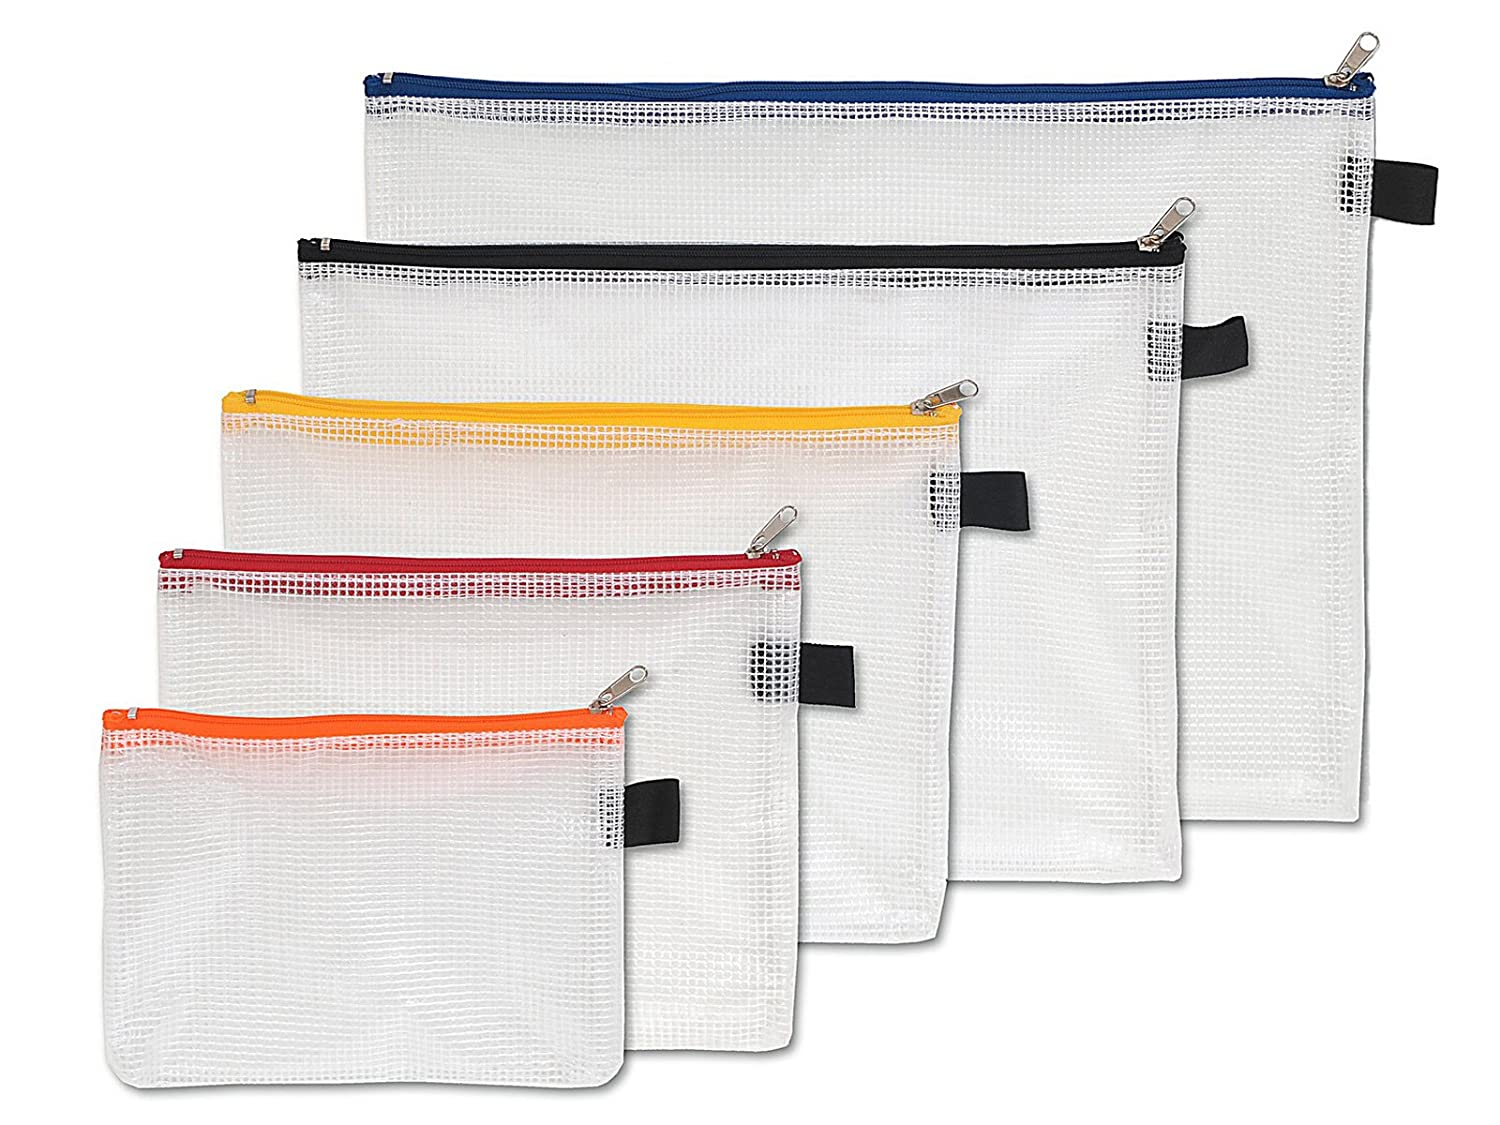 Amazon.com: NIPS 104145001 Reinforced Plastic Fabric Accessory Pouch with Zip, Set of 5: Office Products